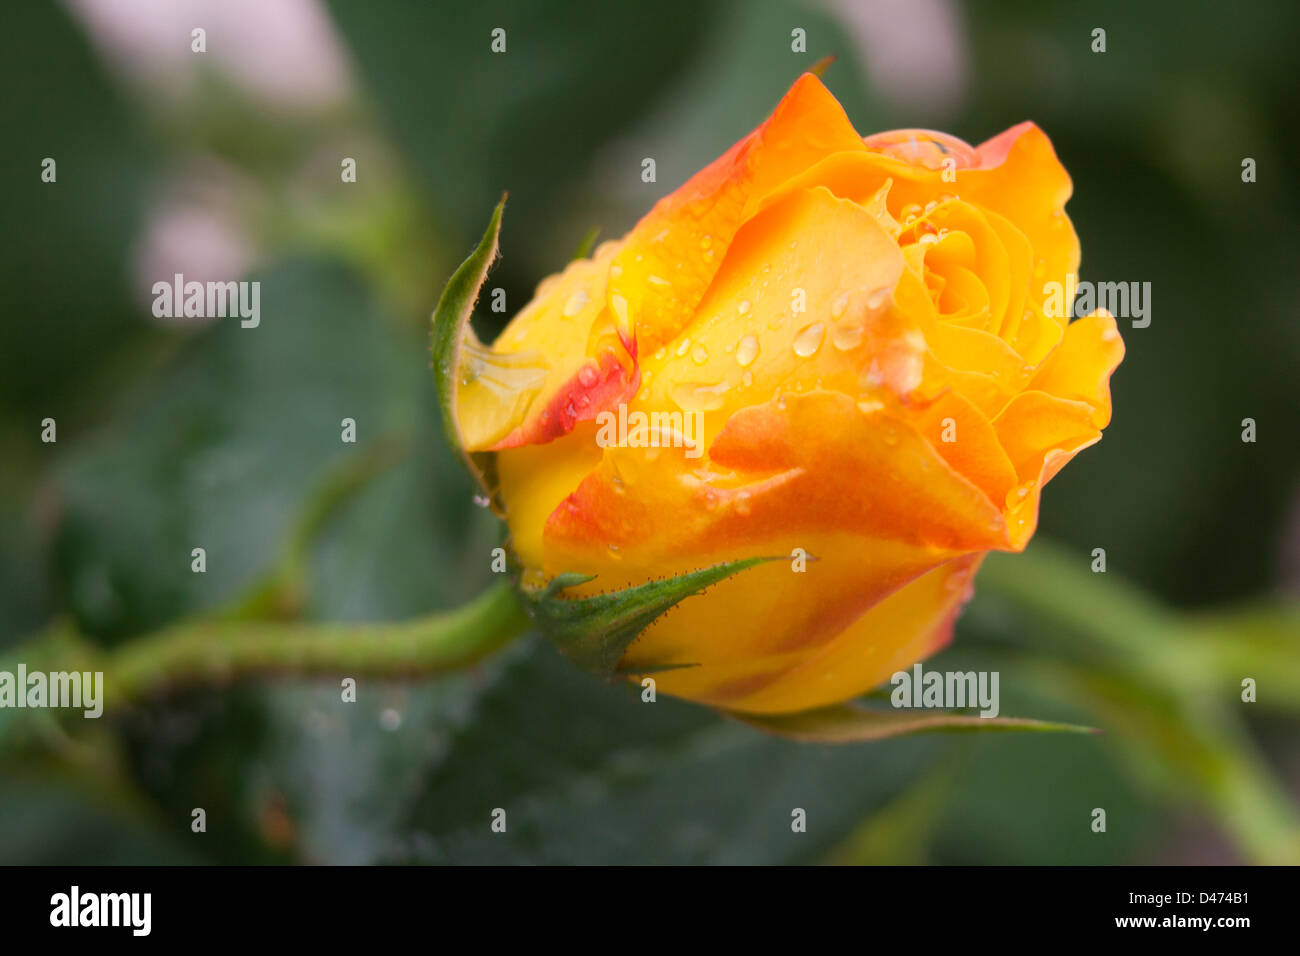 Closeup of the yellow rose flower with rain drops. - Stock Image